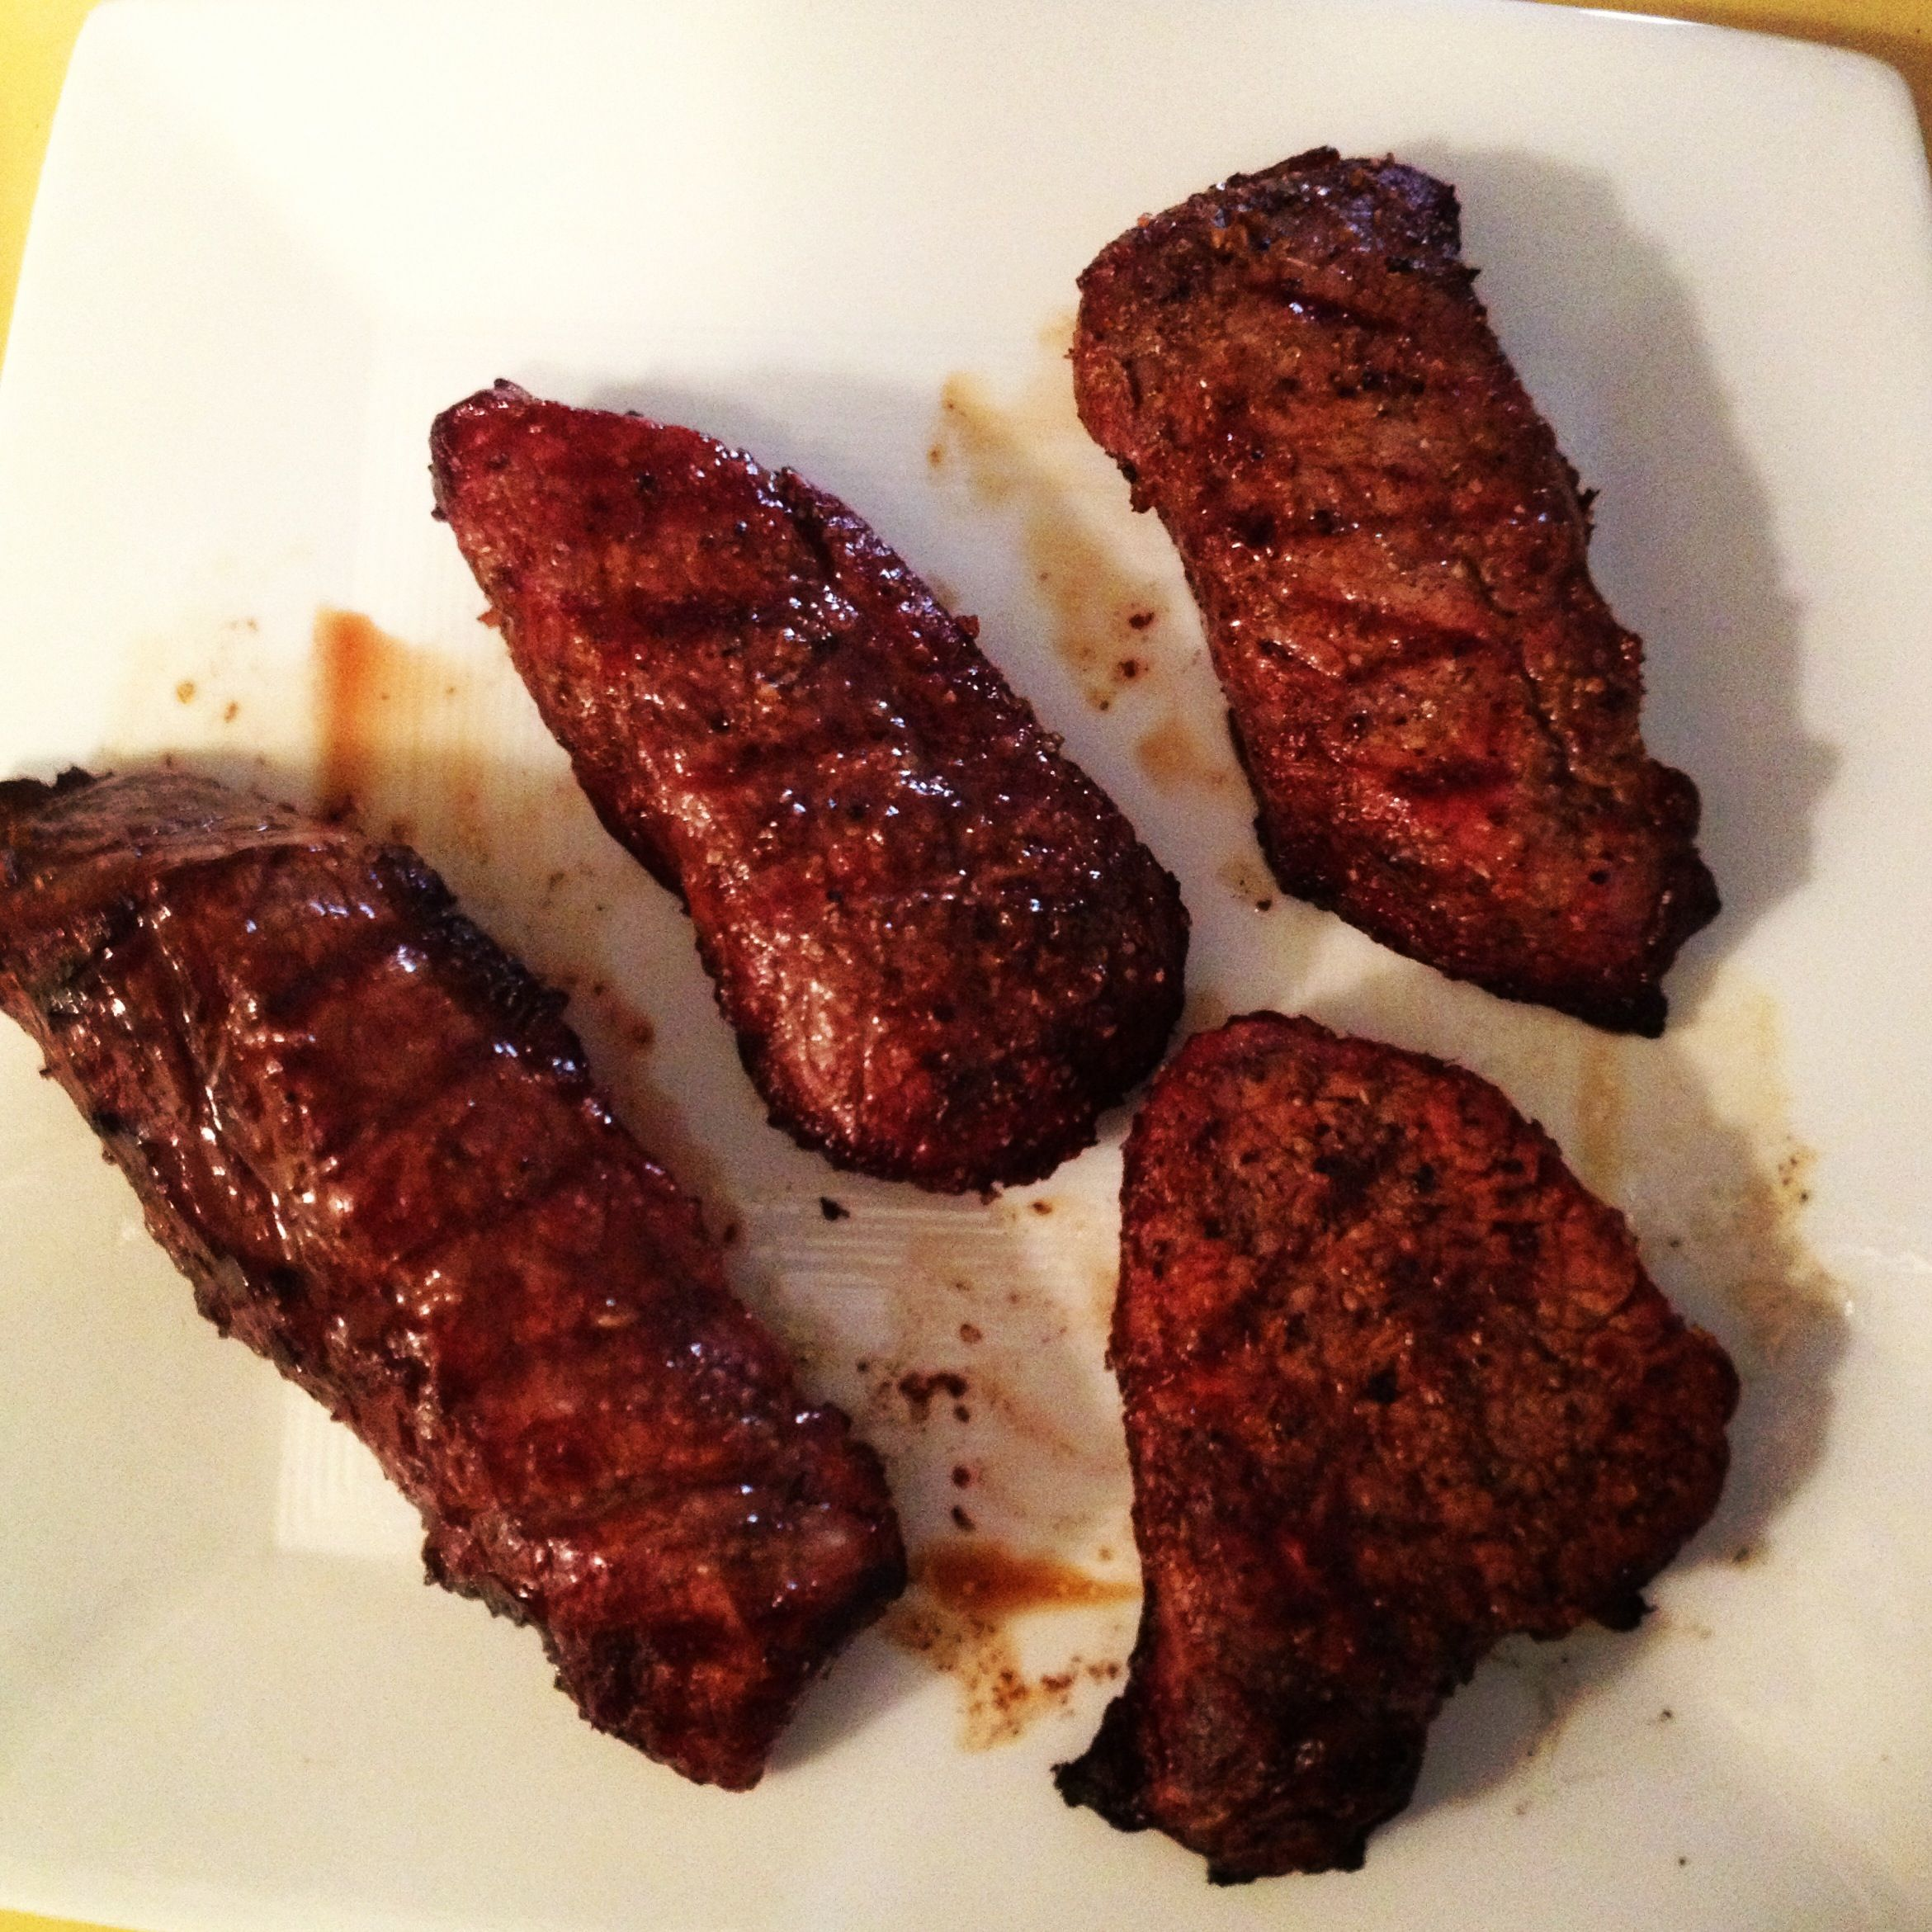 my hubby's tri-tip! (trader joe's delicious tri-tip steaks marinaded in soy sauce and spices!) the BEST!